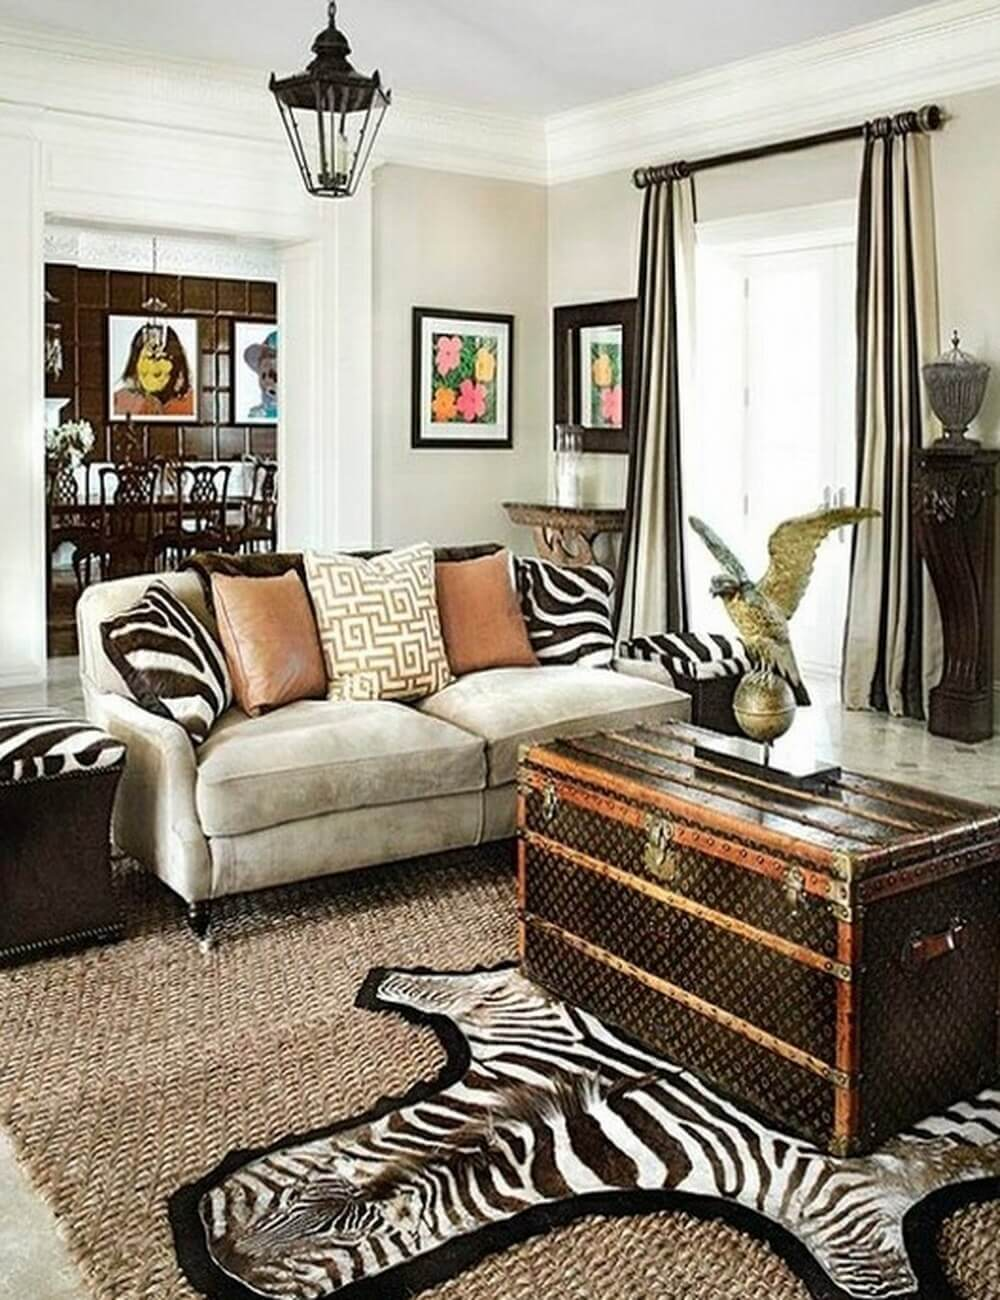 10 fierce interior design ideas with zebra print accent for Interior design items for home